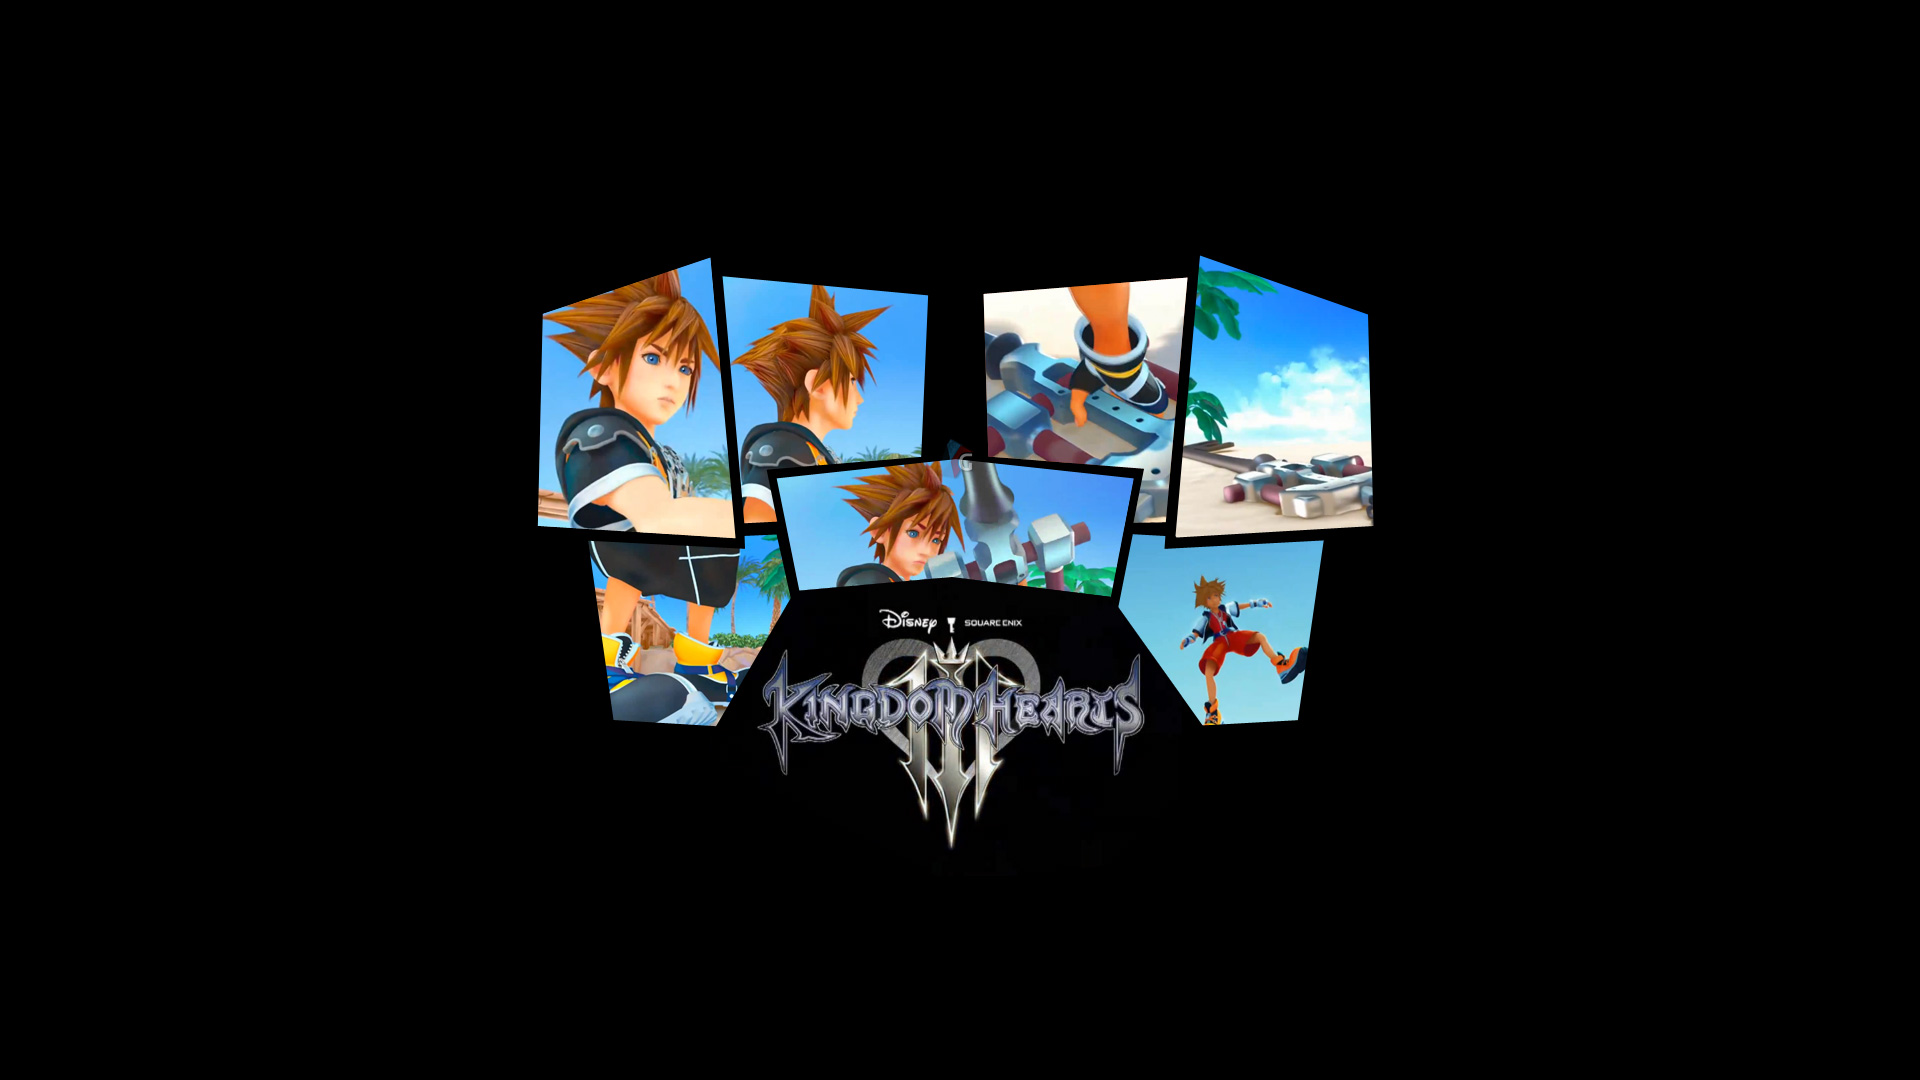 Download download kingdom hearts 3 wallpaper 1080p download link 720p 1920x1080 50 kh3 - 1366x768 is 720p or 1080p ...